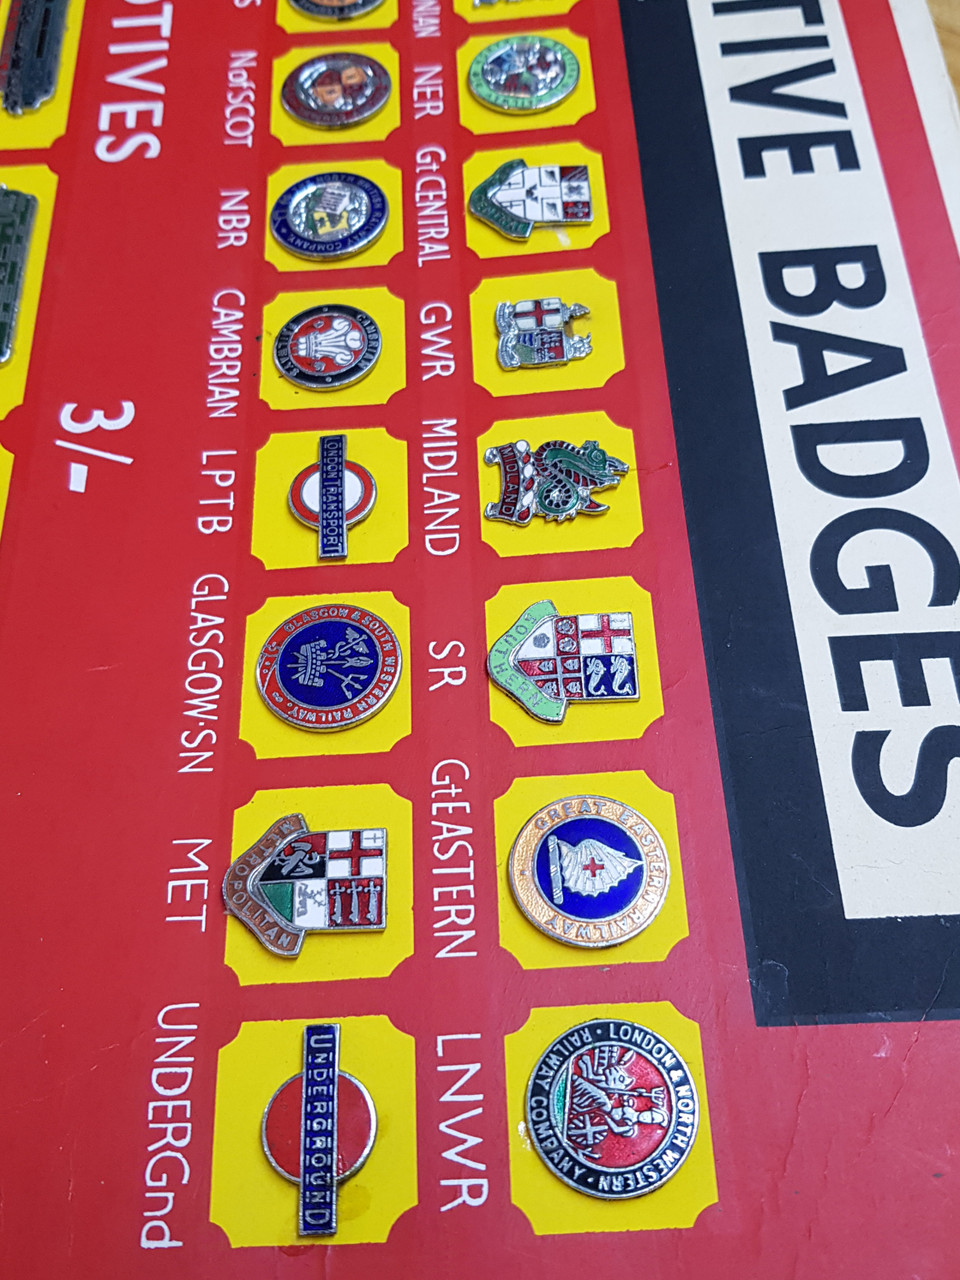 VT 0524. SQUIRES  FULL SHOP DISPLAY CARD OF RAILWAY BADGES.